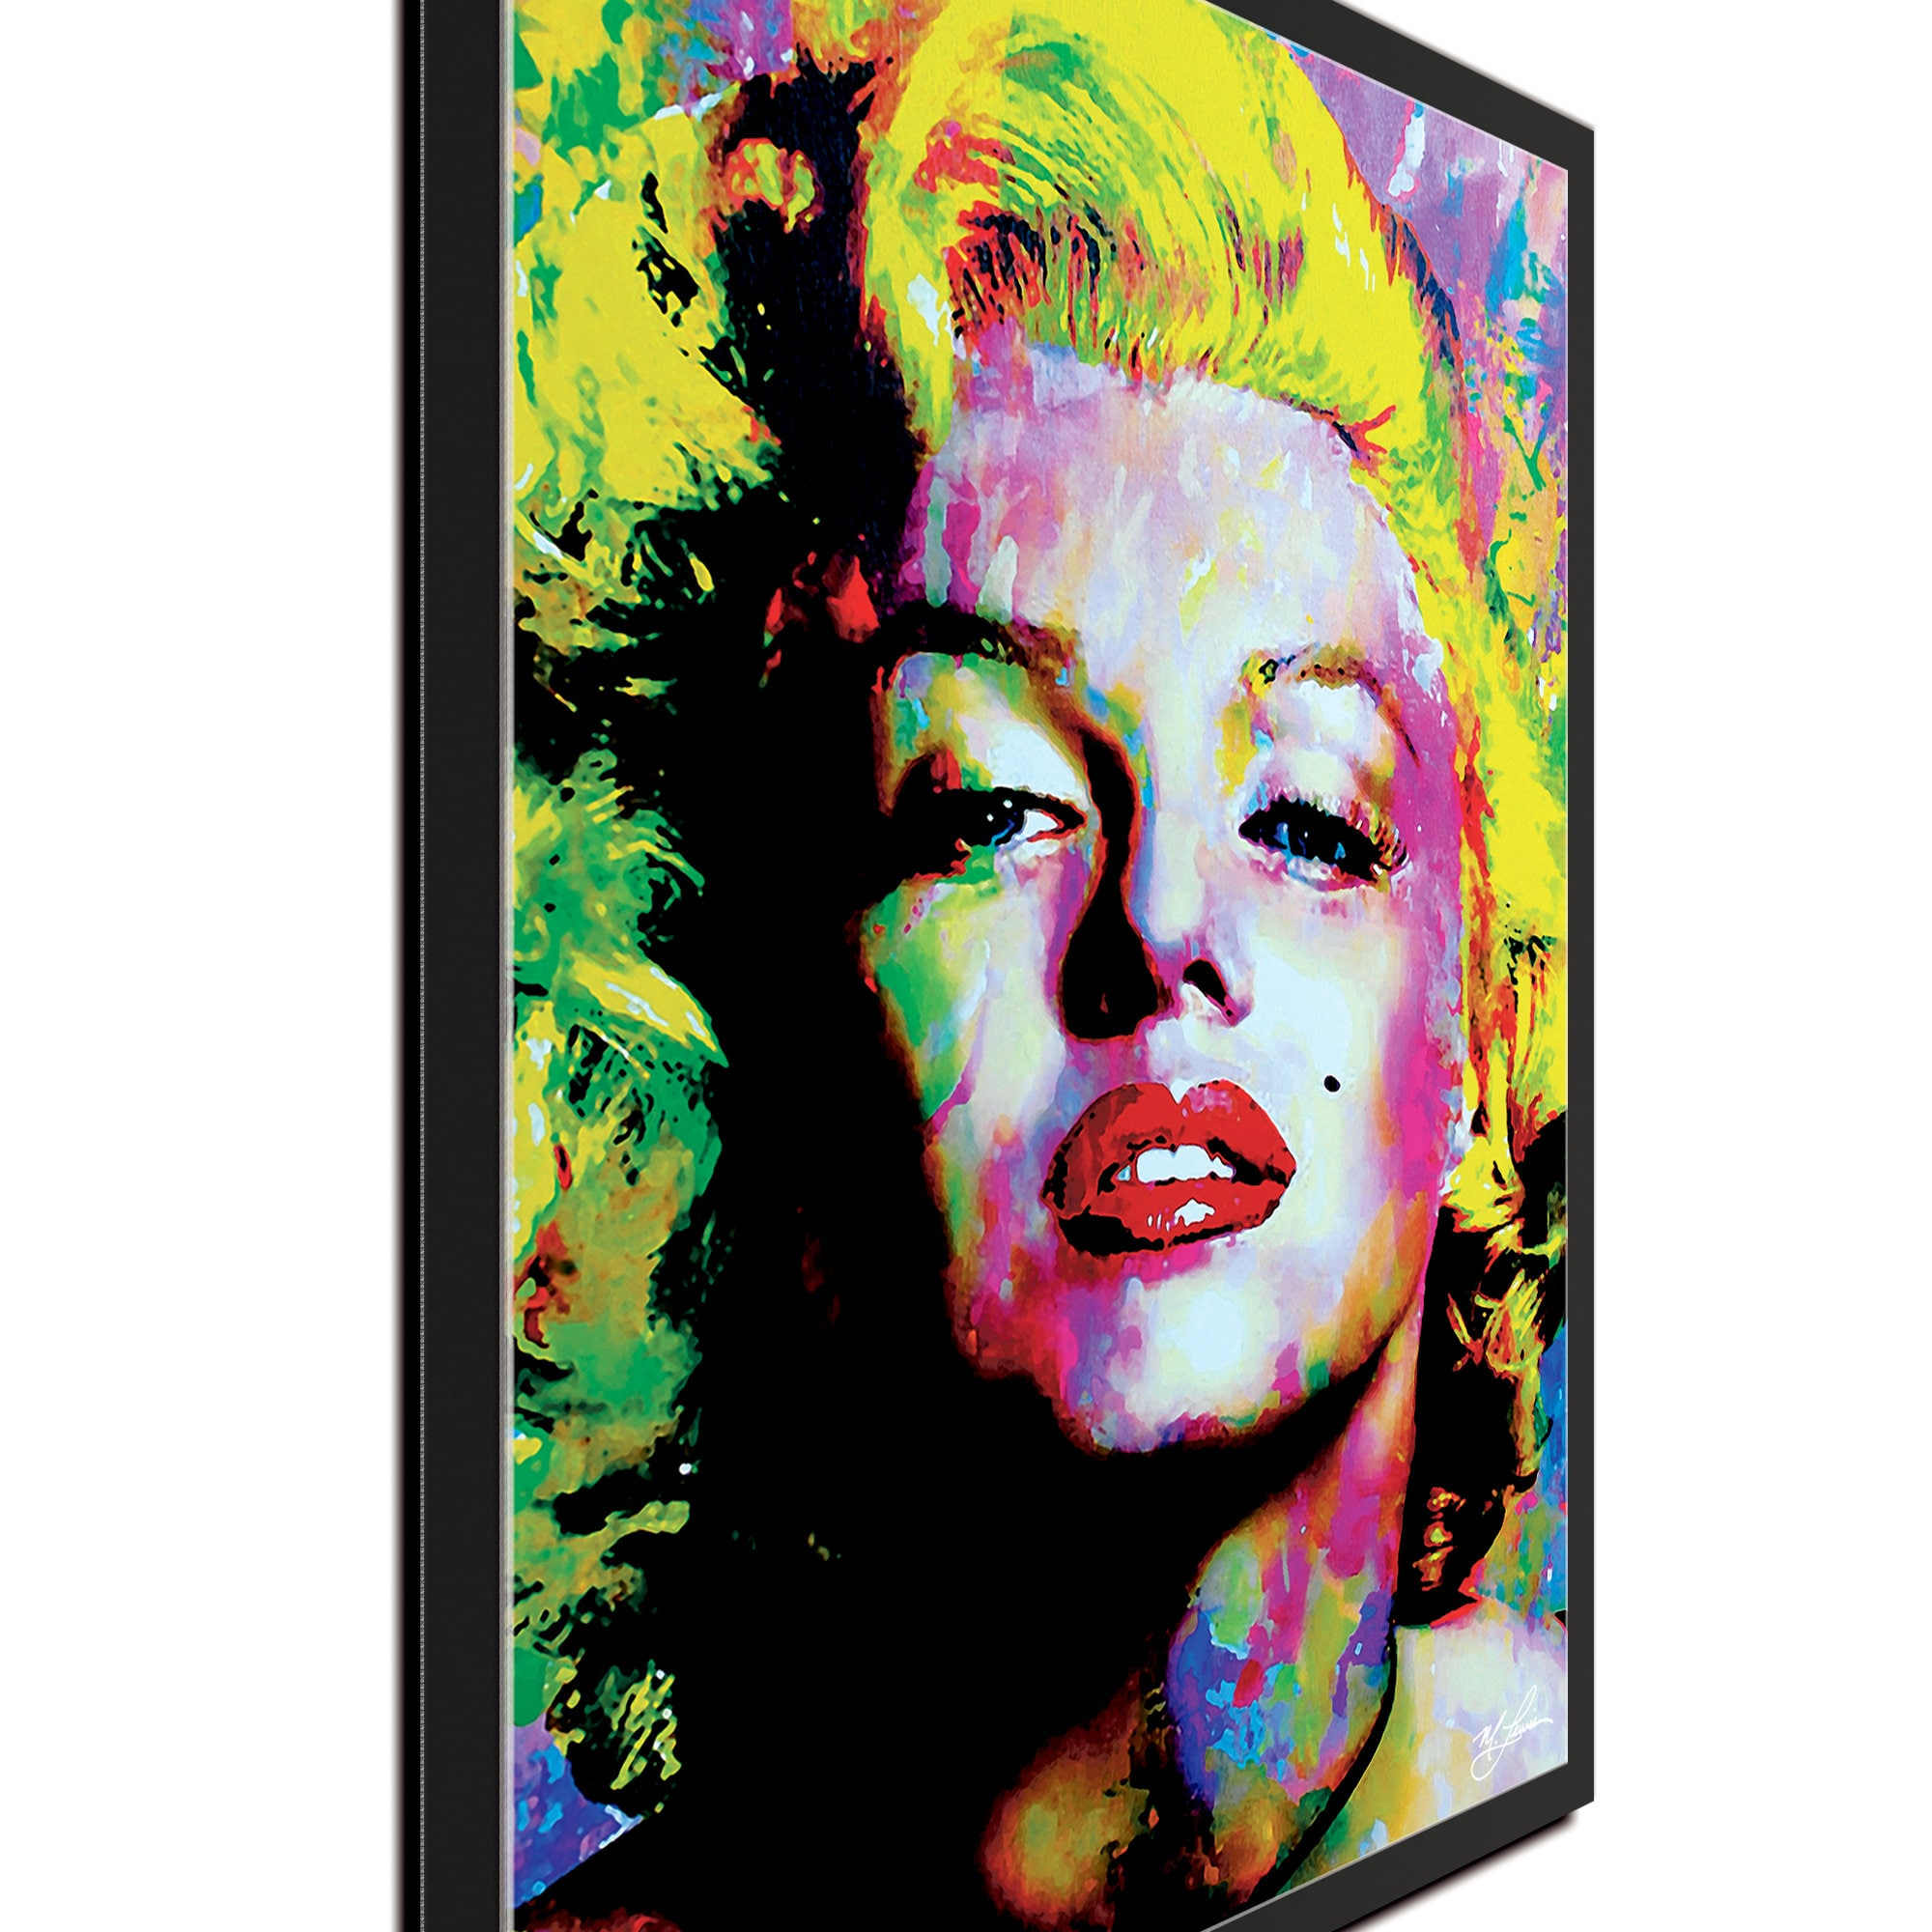 Art Marilyn Pop Art Marilyn Monroe Insatiable By Artist Mark Lewis Sexy Marilyn Monroe Painting Limited Edition Giclee Print On Metal Or Acrylic